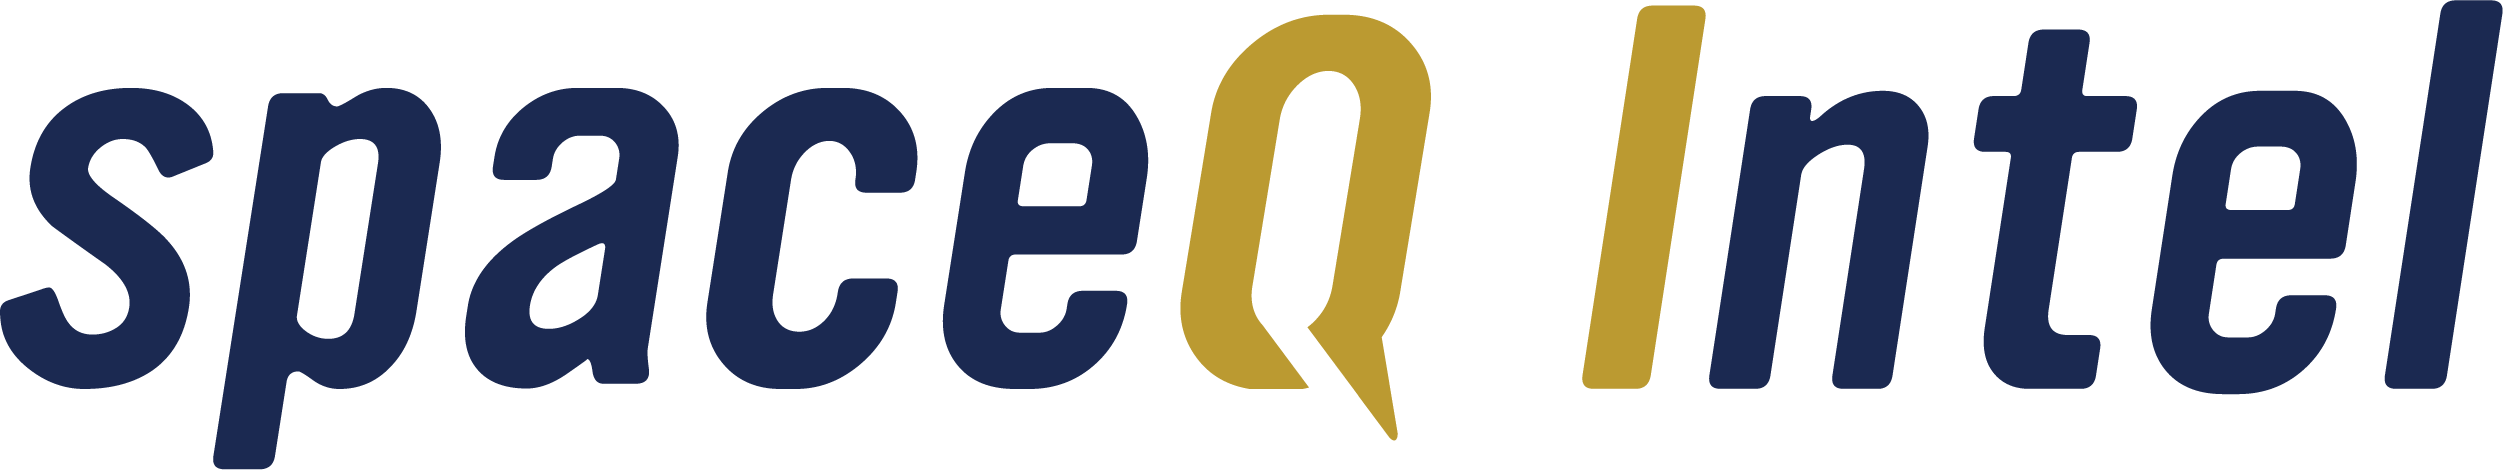 SpaceQ Intel, a division of SpaceQ Media Inc.